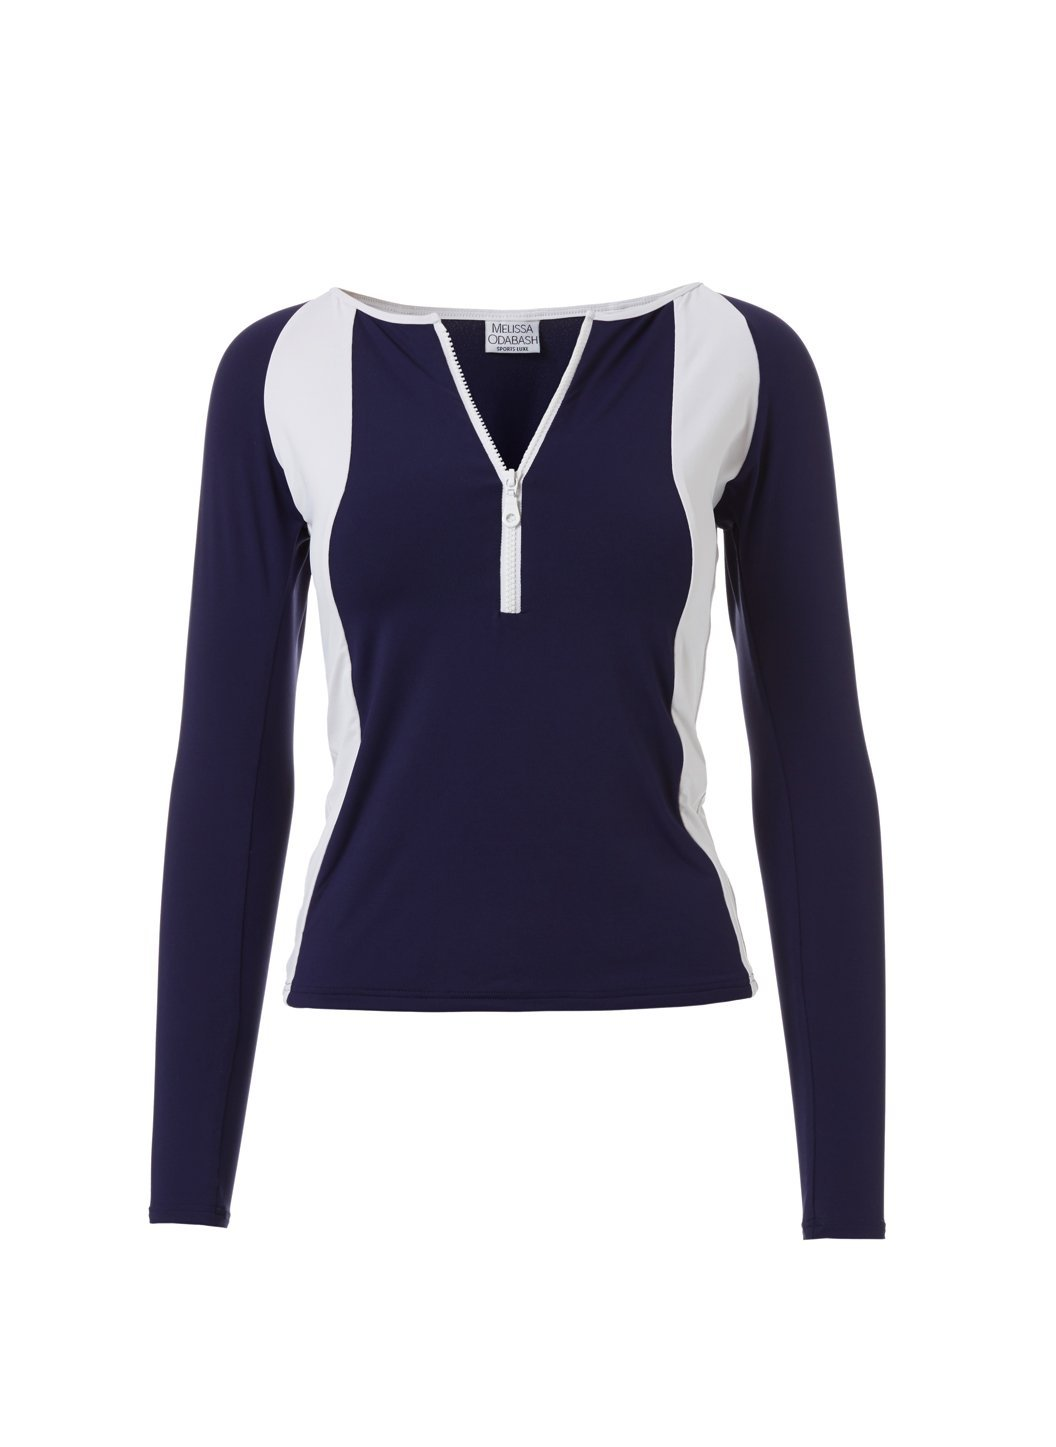 Bondi Navy White Sports Long Sleeve Rash Vest Top